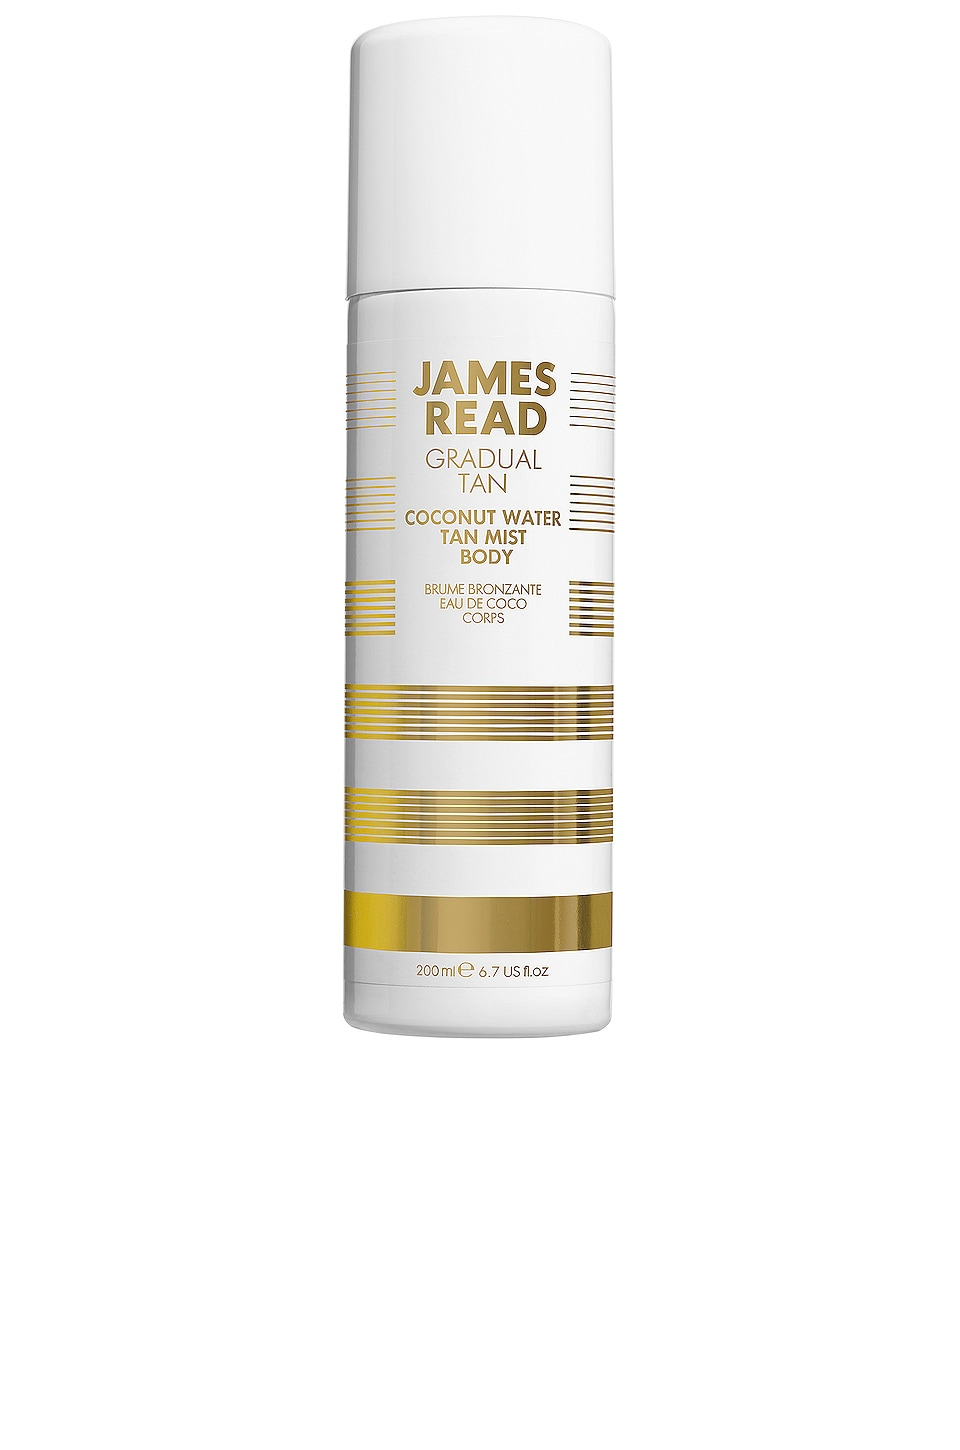 James Read Tan Coconut Water Tan Body Mist